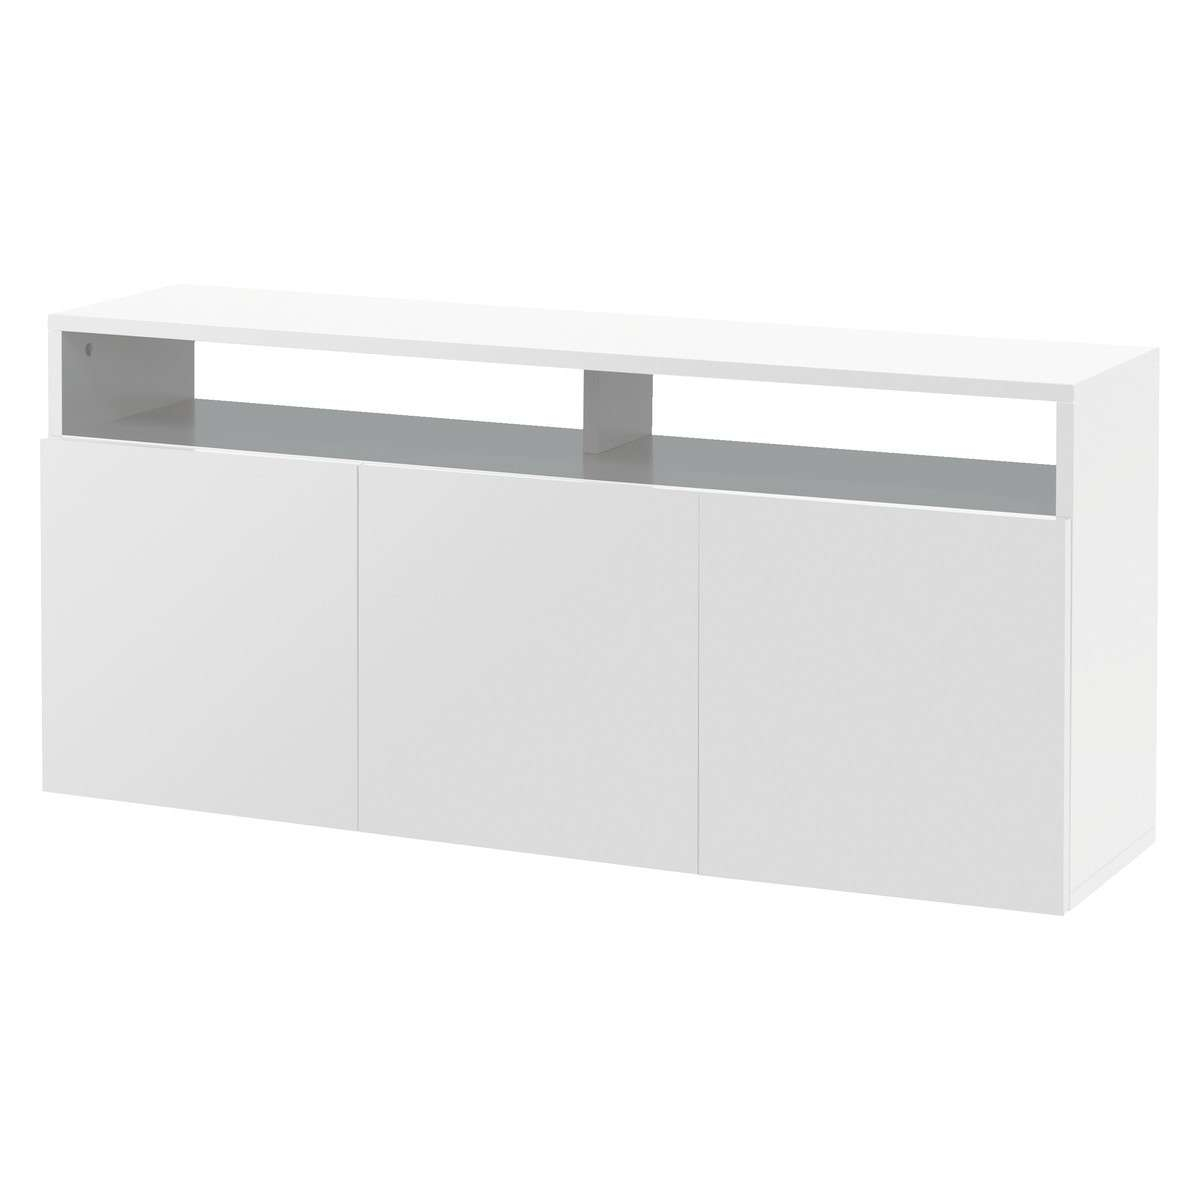 Kubrik White High Gloss Large Sideboard | Buy Now At Habitat Uk For Large White Sideboards (View 3 of 20)